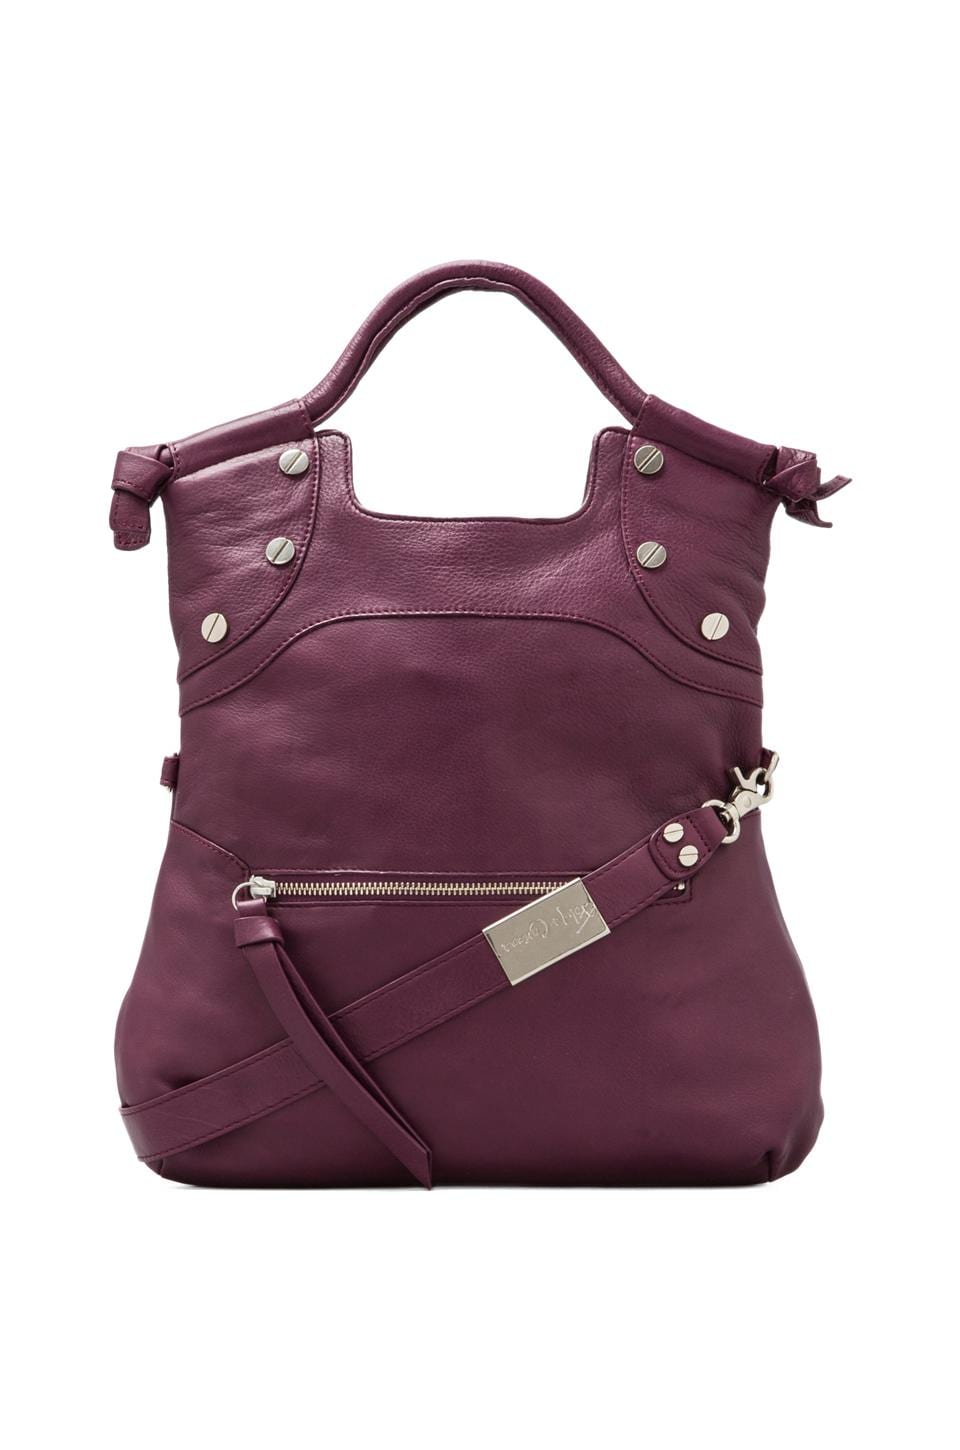 Foley + Corinna FC Lady Bag in Regalia